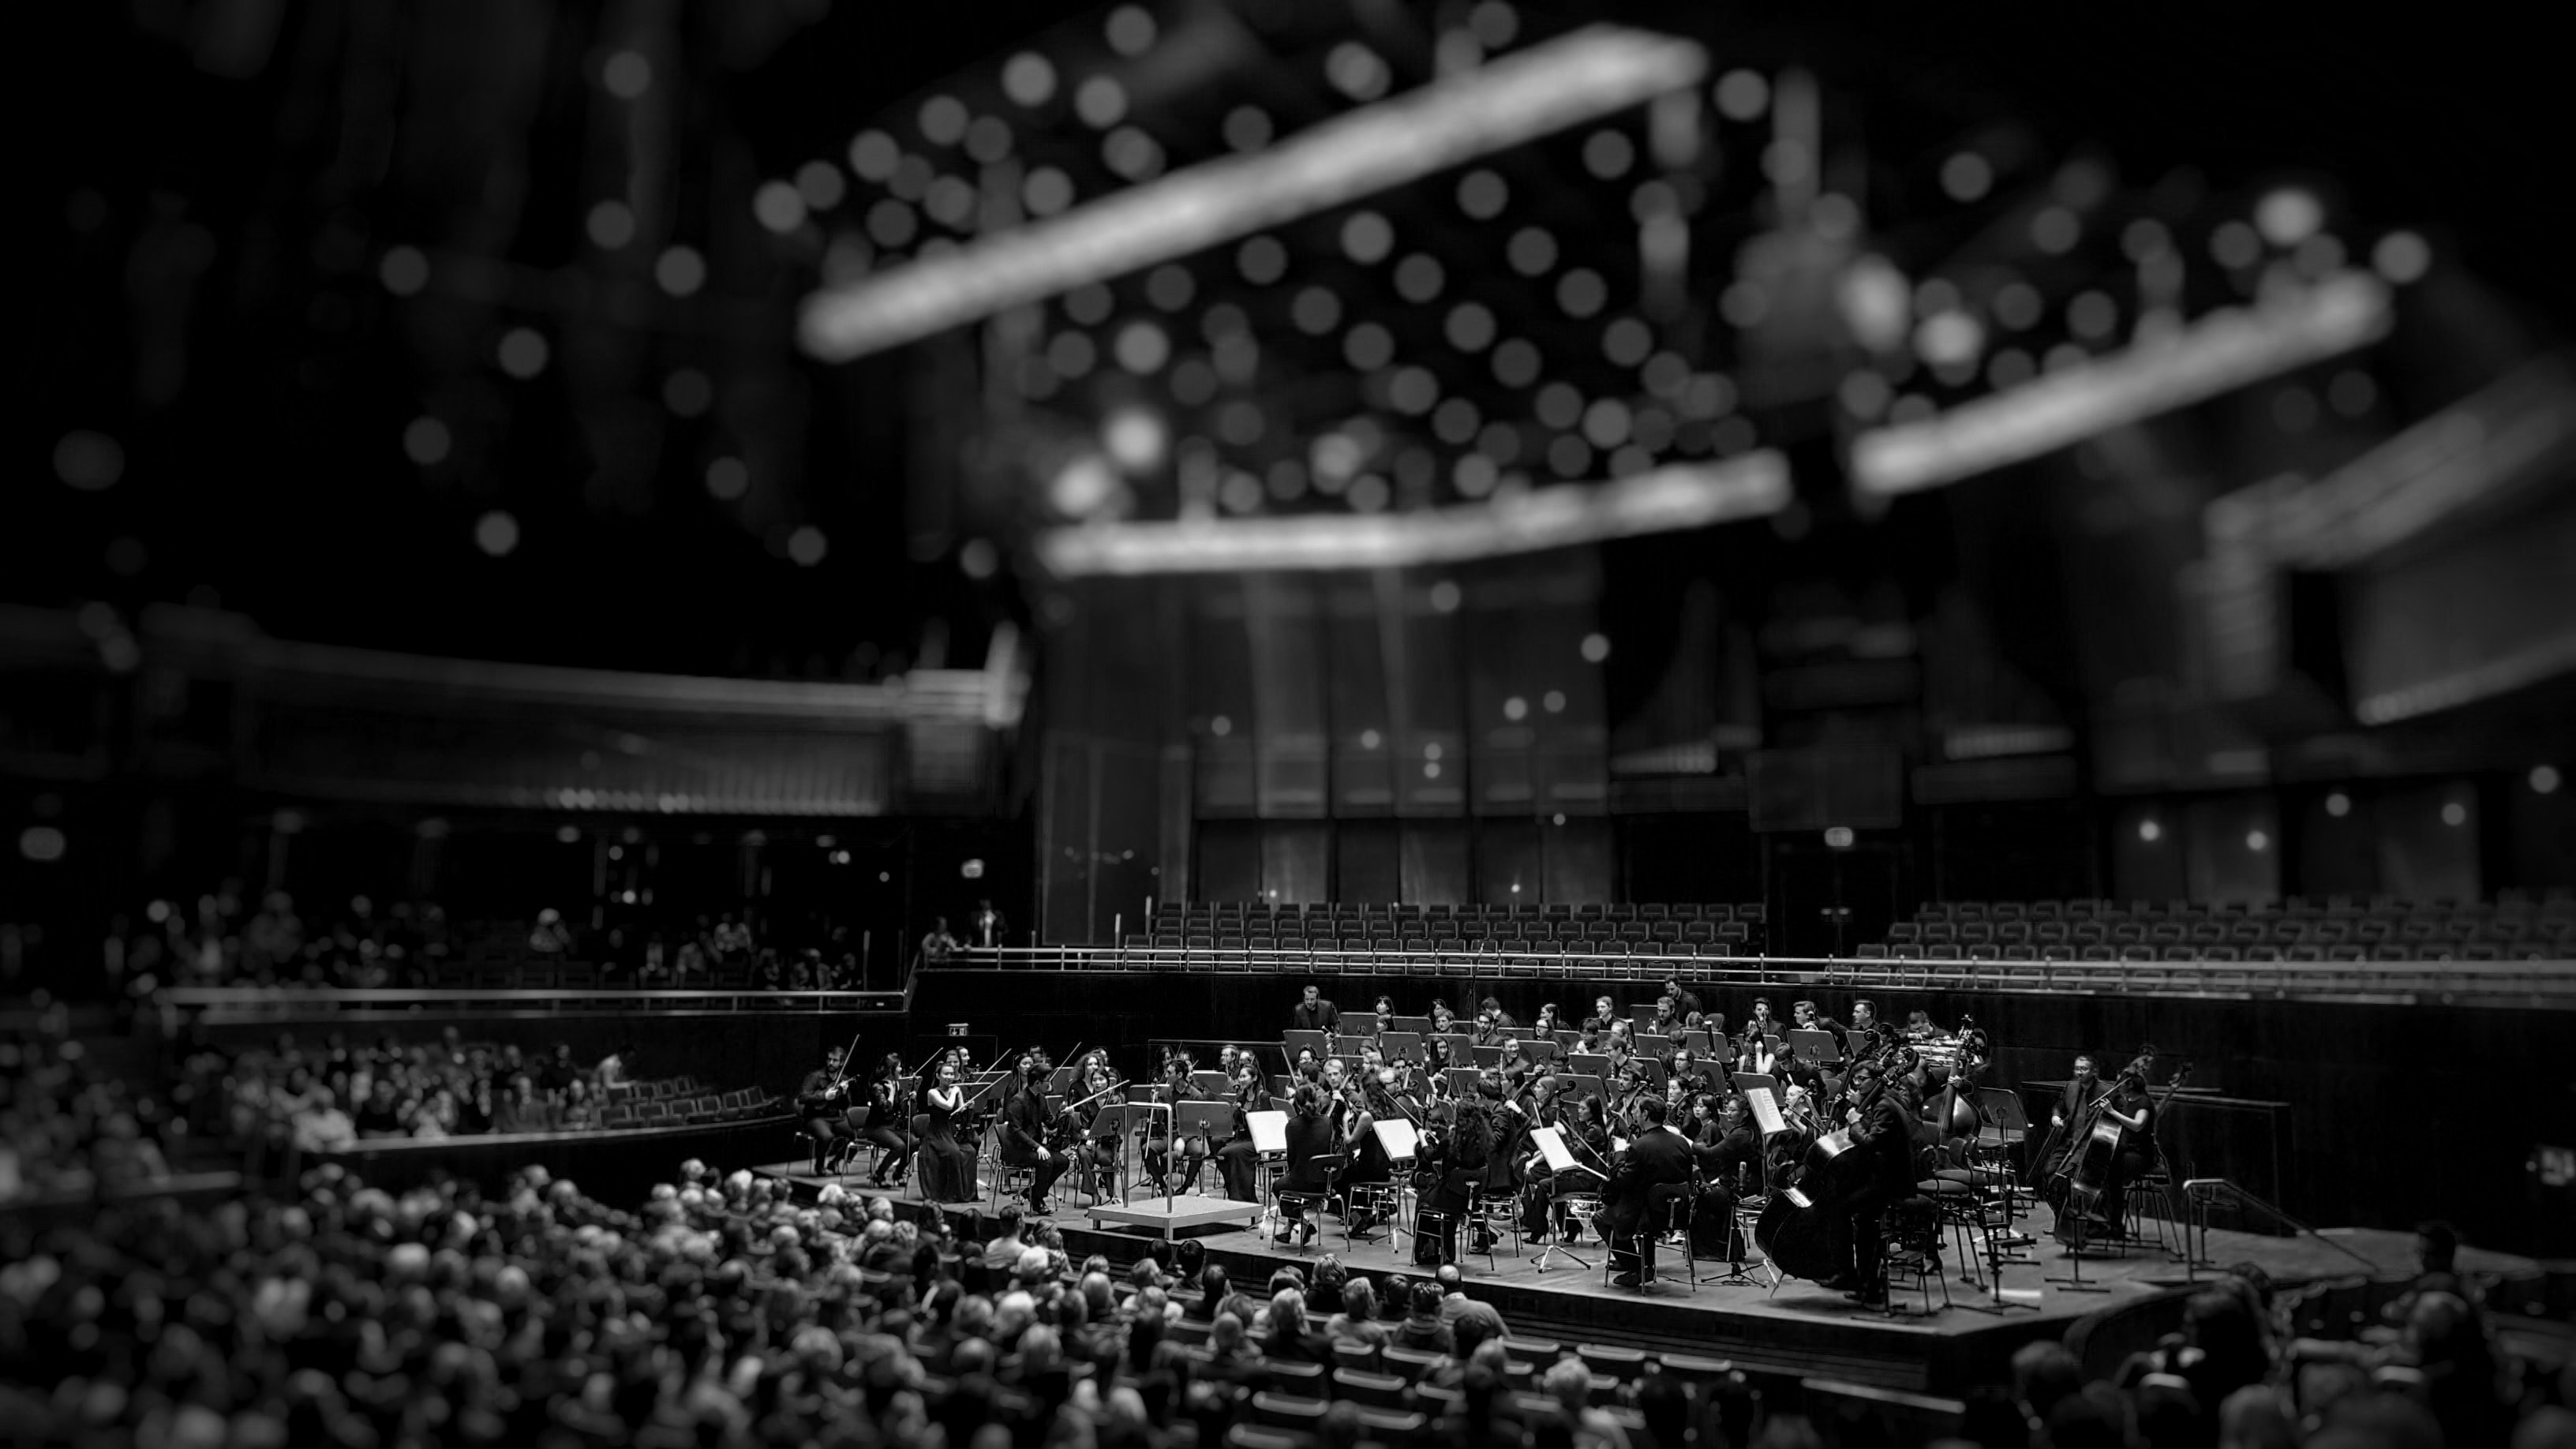 Orchestra playing on stage with blurry background